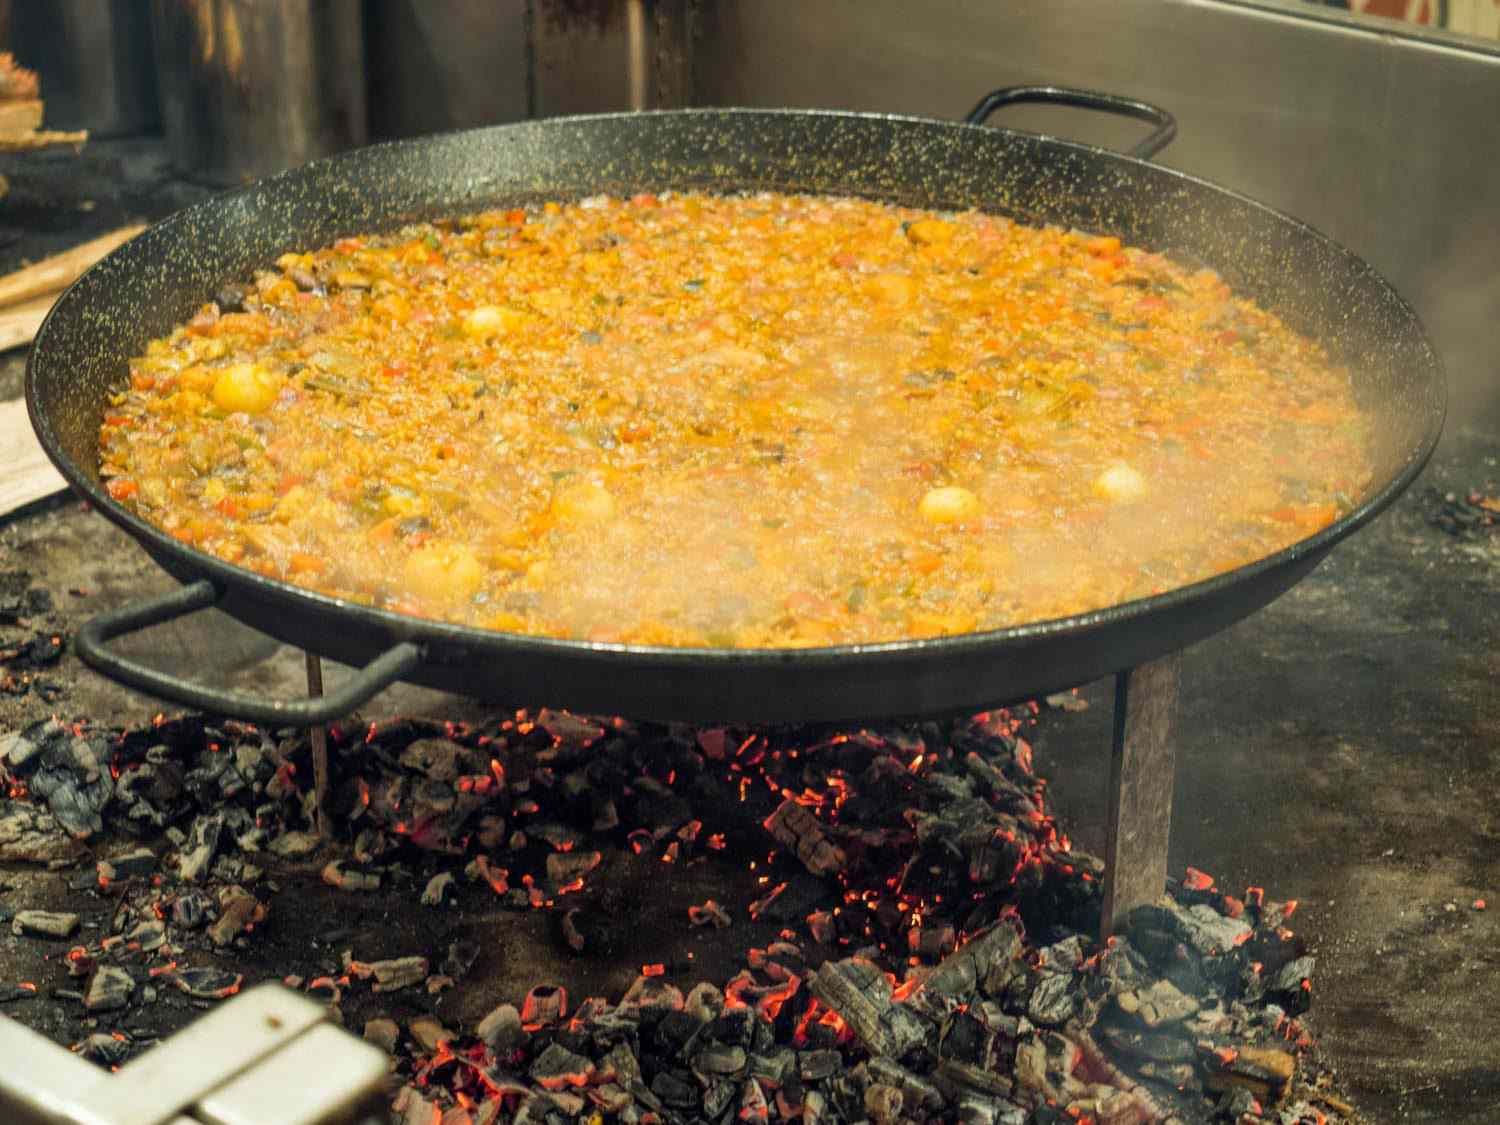 A large vegetable paella being finished over embers at Mercado Little Spain in NYC. The paella pan is held aloft on an iron stand, making it easy for the cook to manage the fire and embers below.